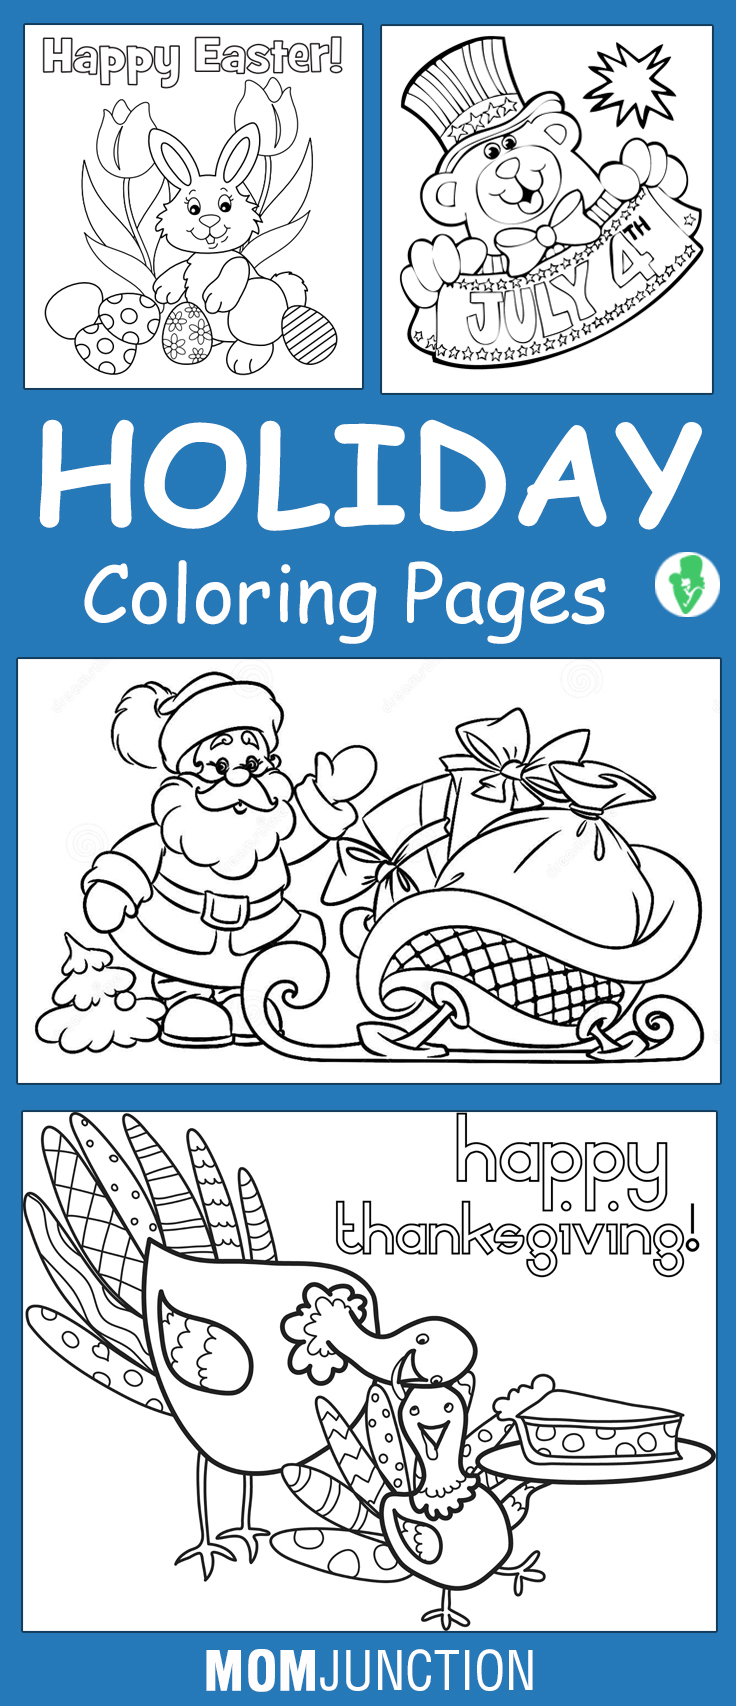 Coloring pages articles about love